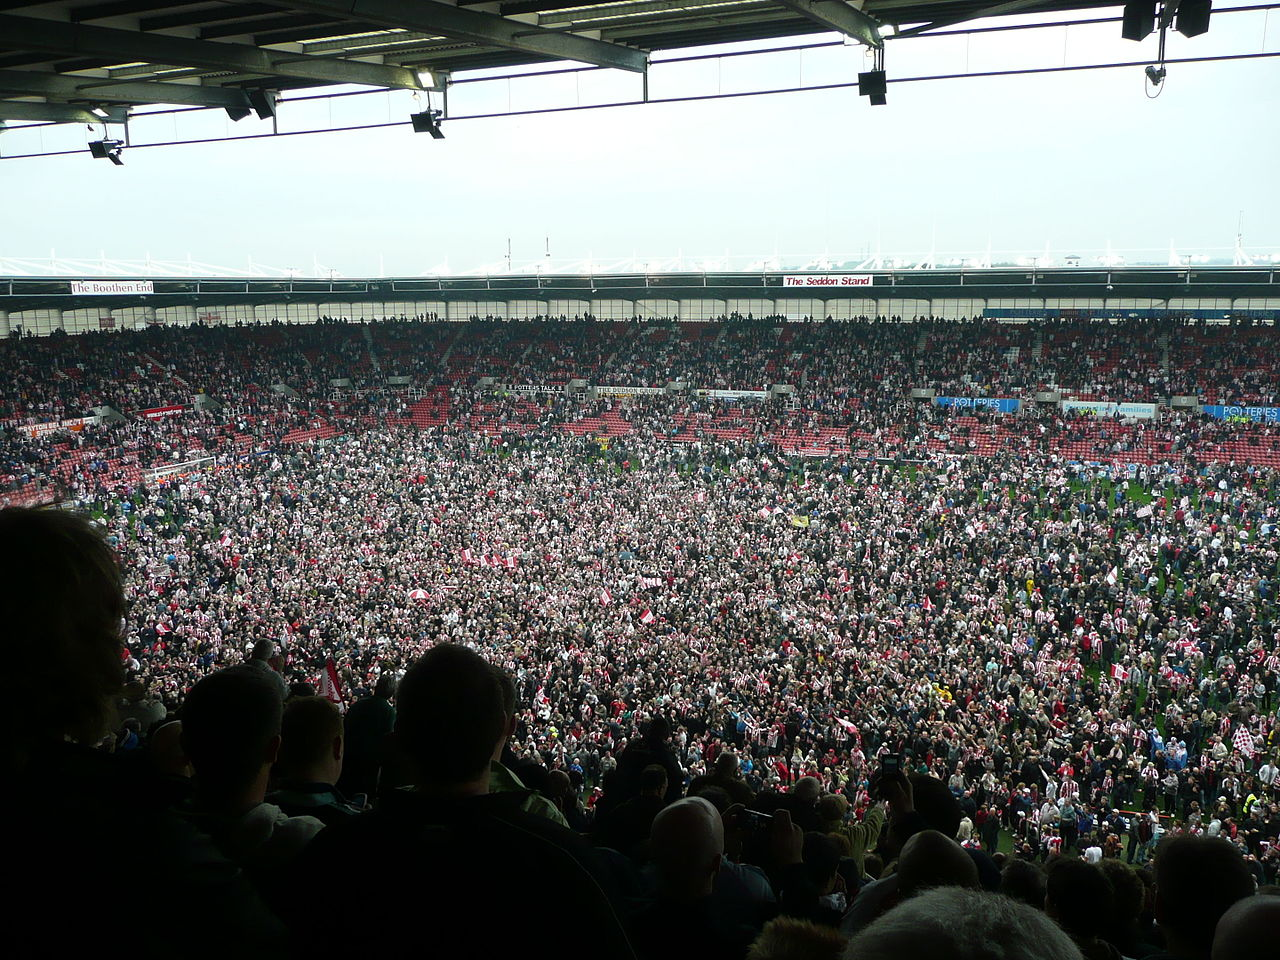 File:Stoke City Are Promoted To The Premier League, 2008